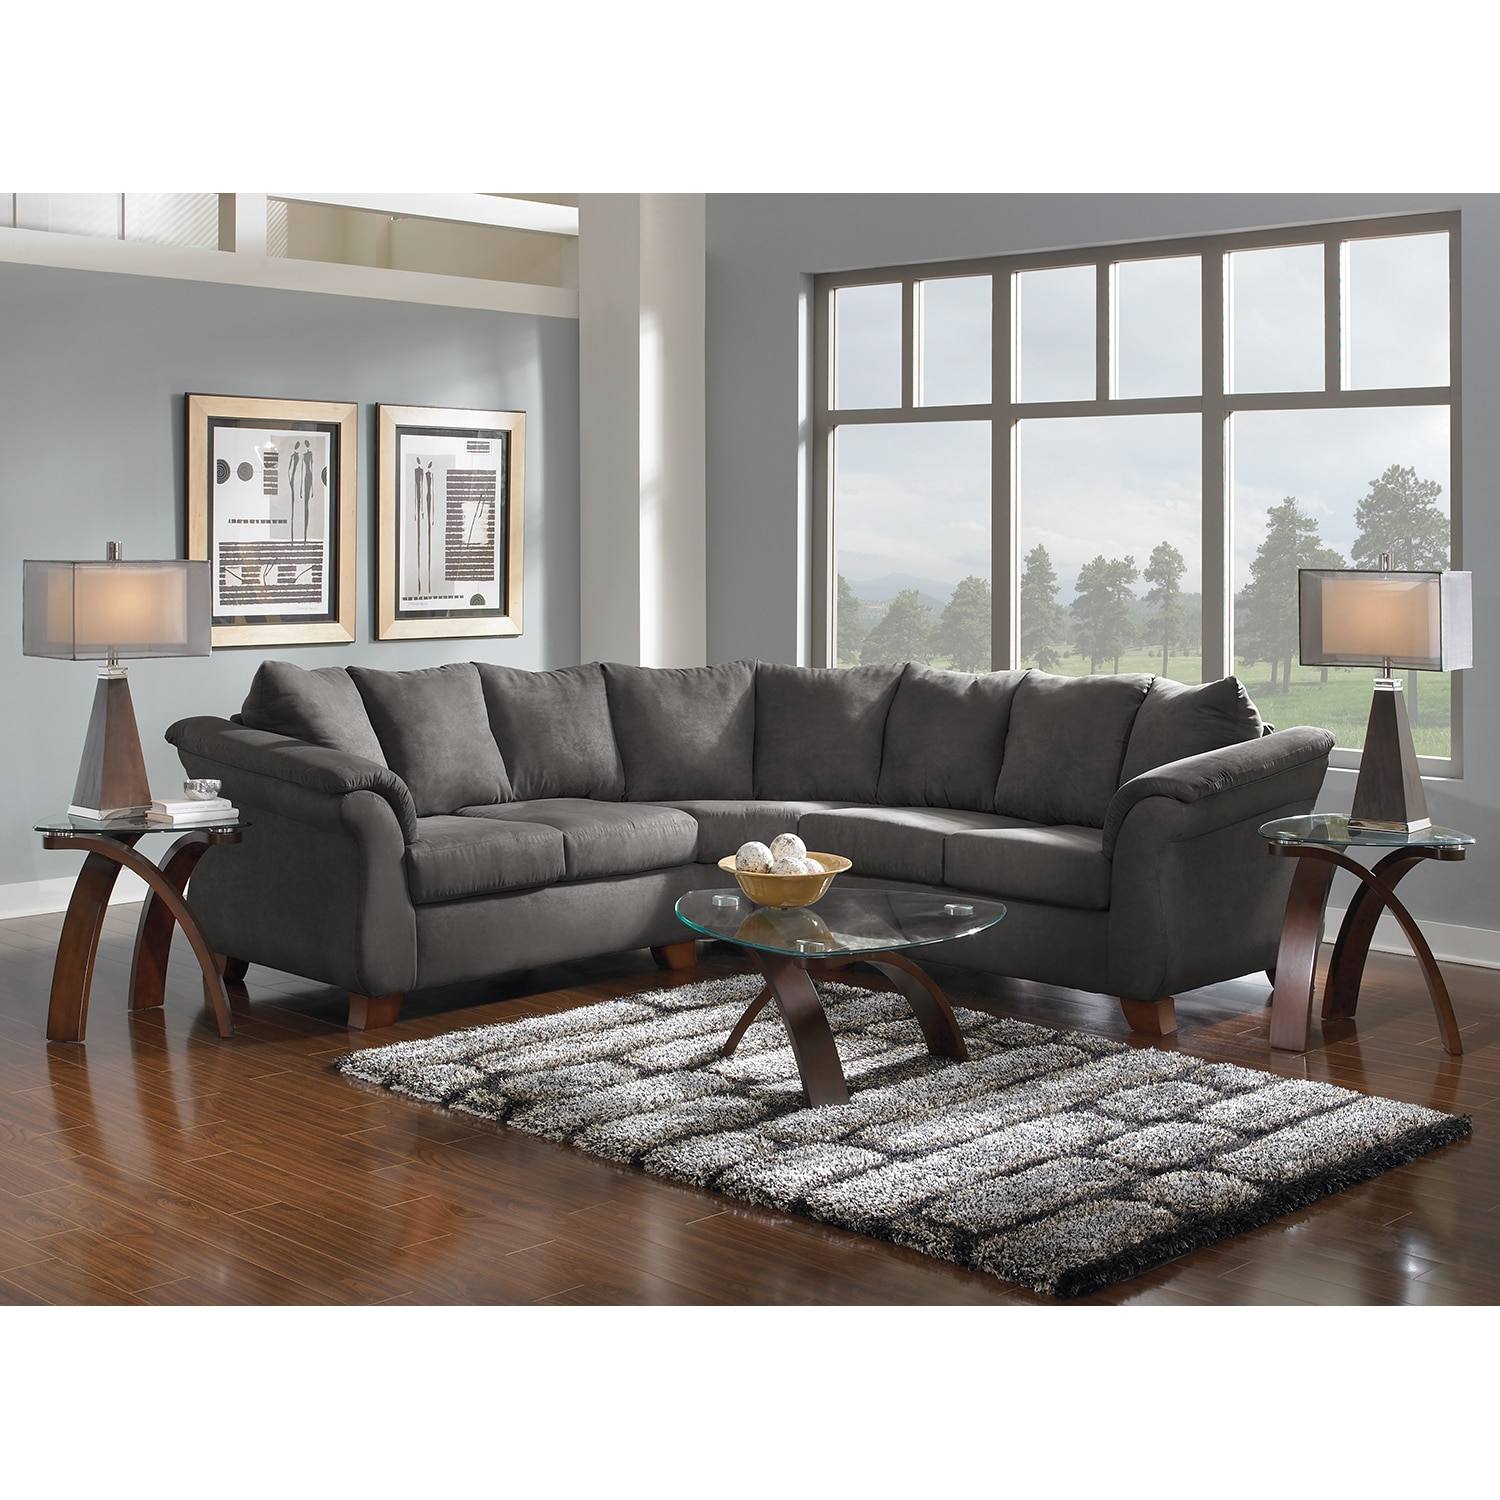 Living Room Furniture: Adrian 2-Piece Sectional - Graphite